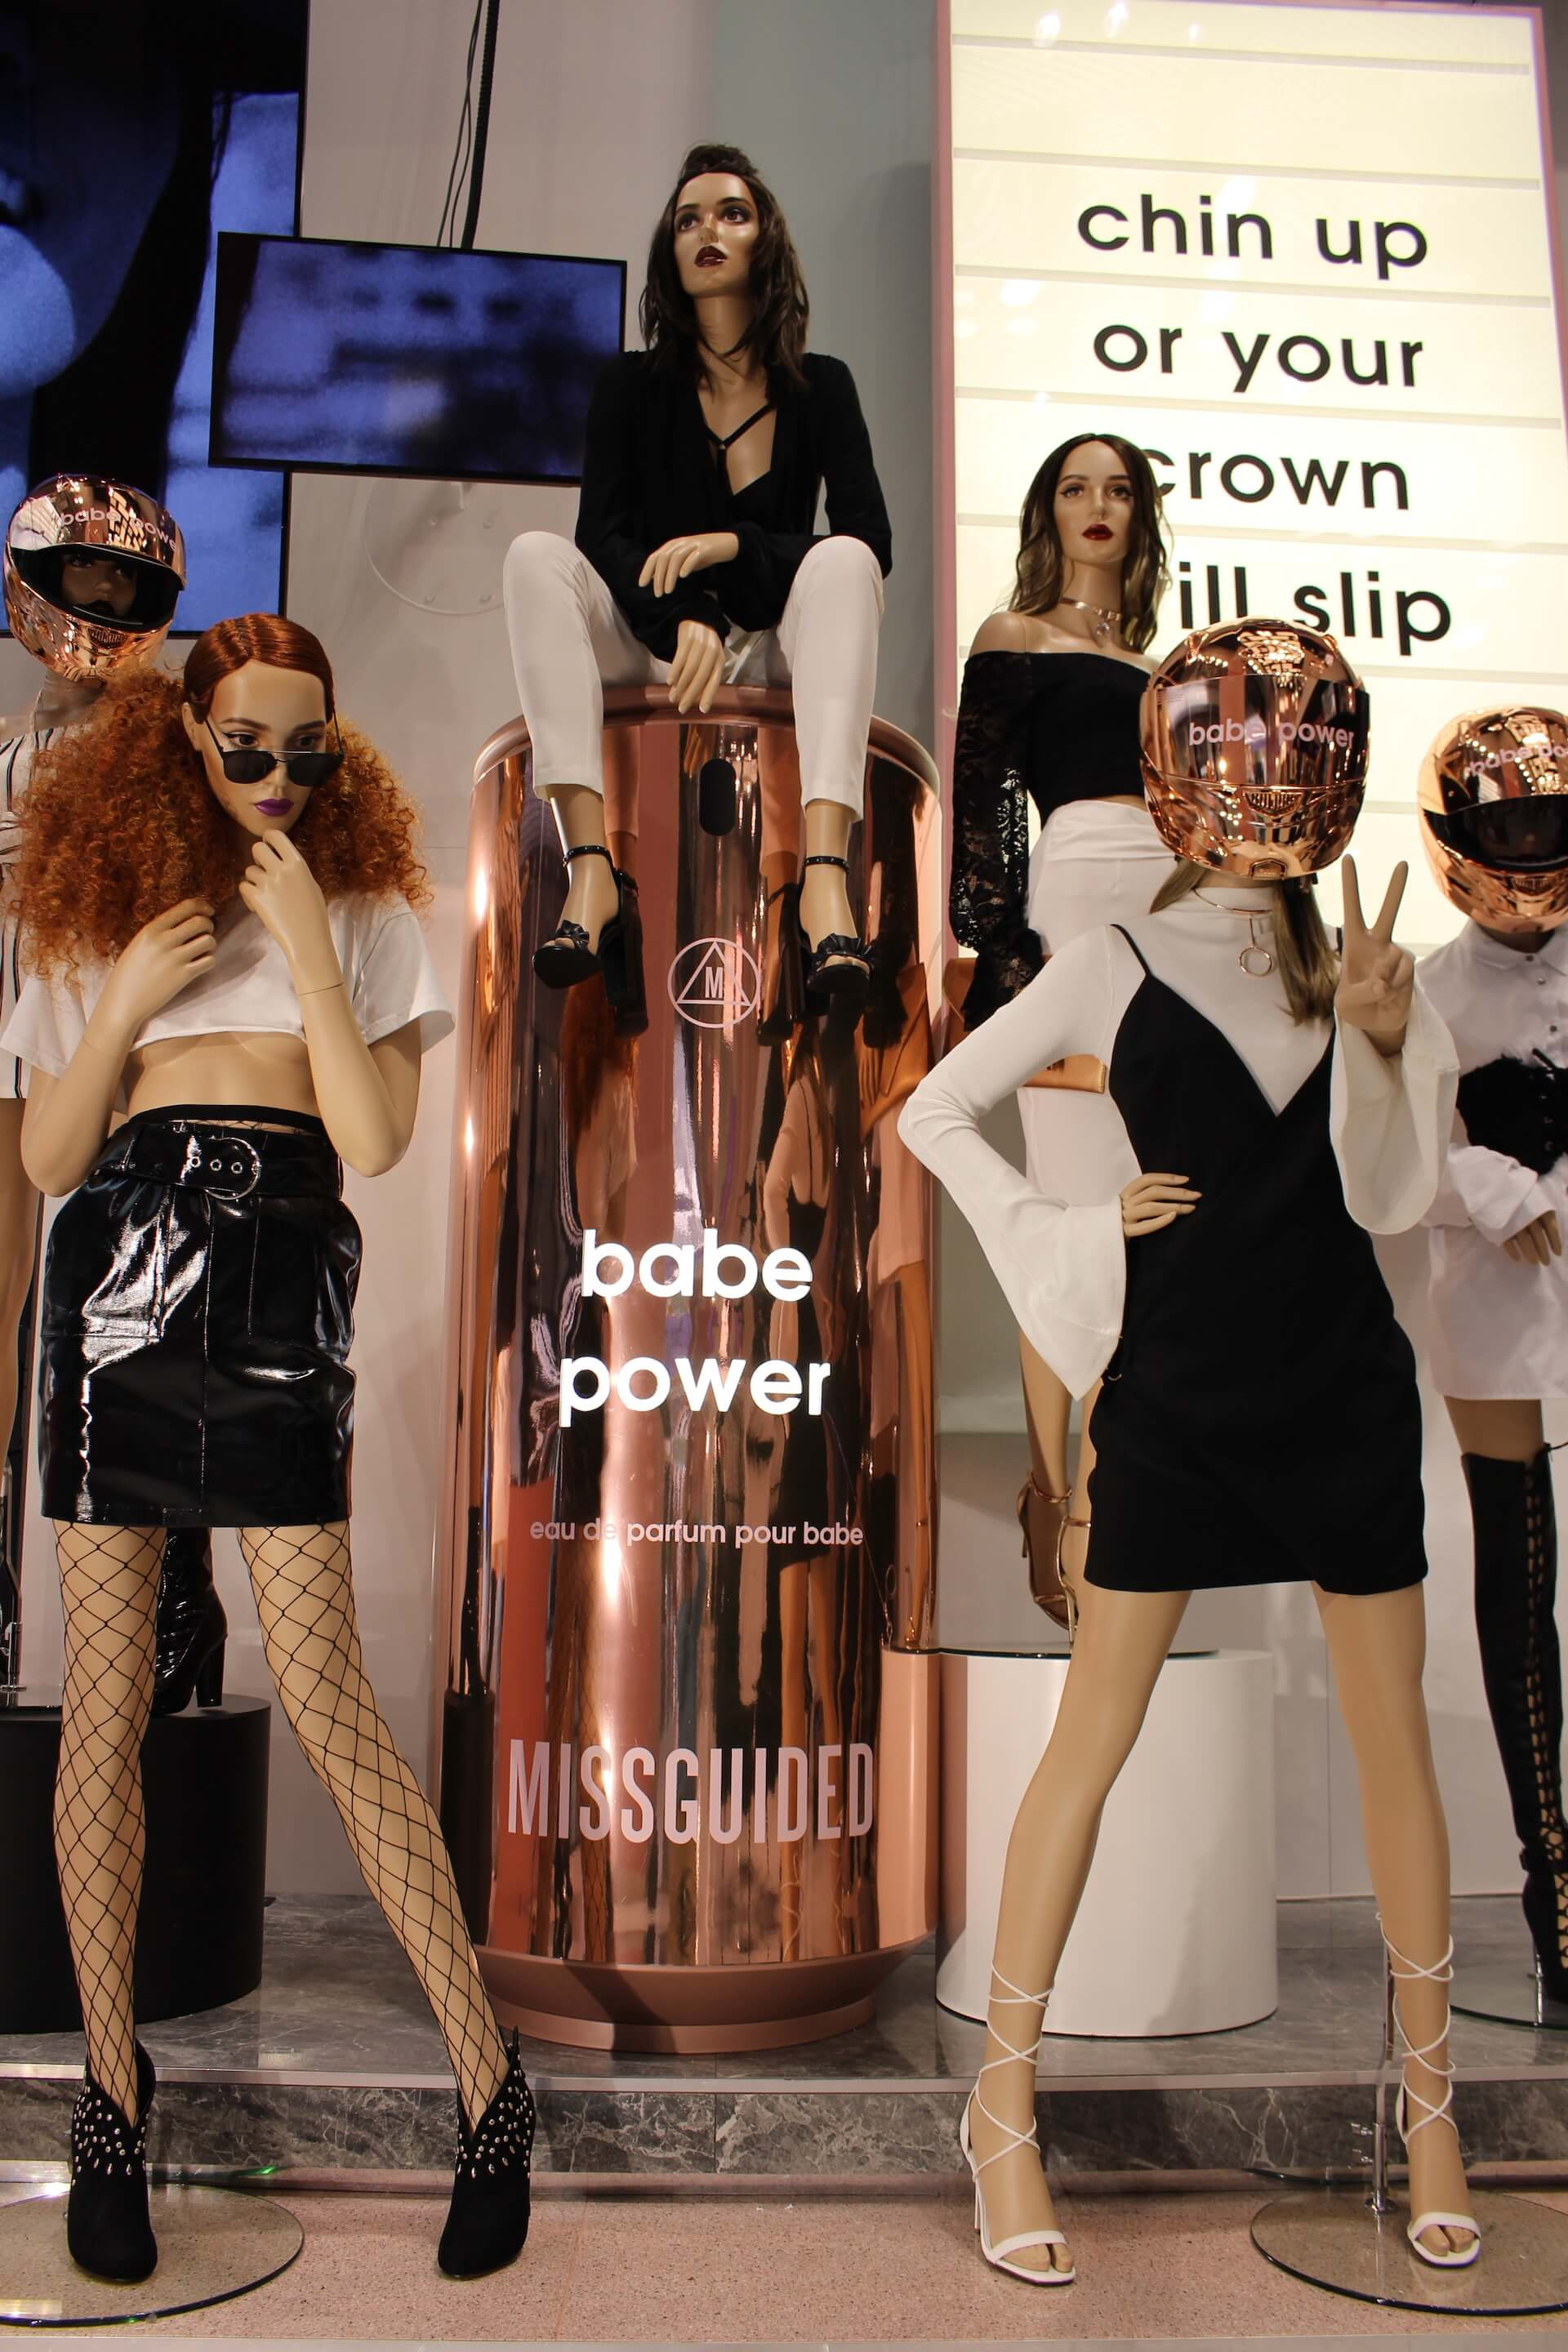 missguided babe power fashion instore display bespoke prop manufacture visual merchandising